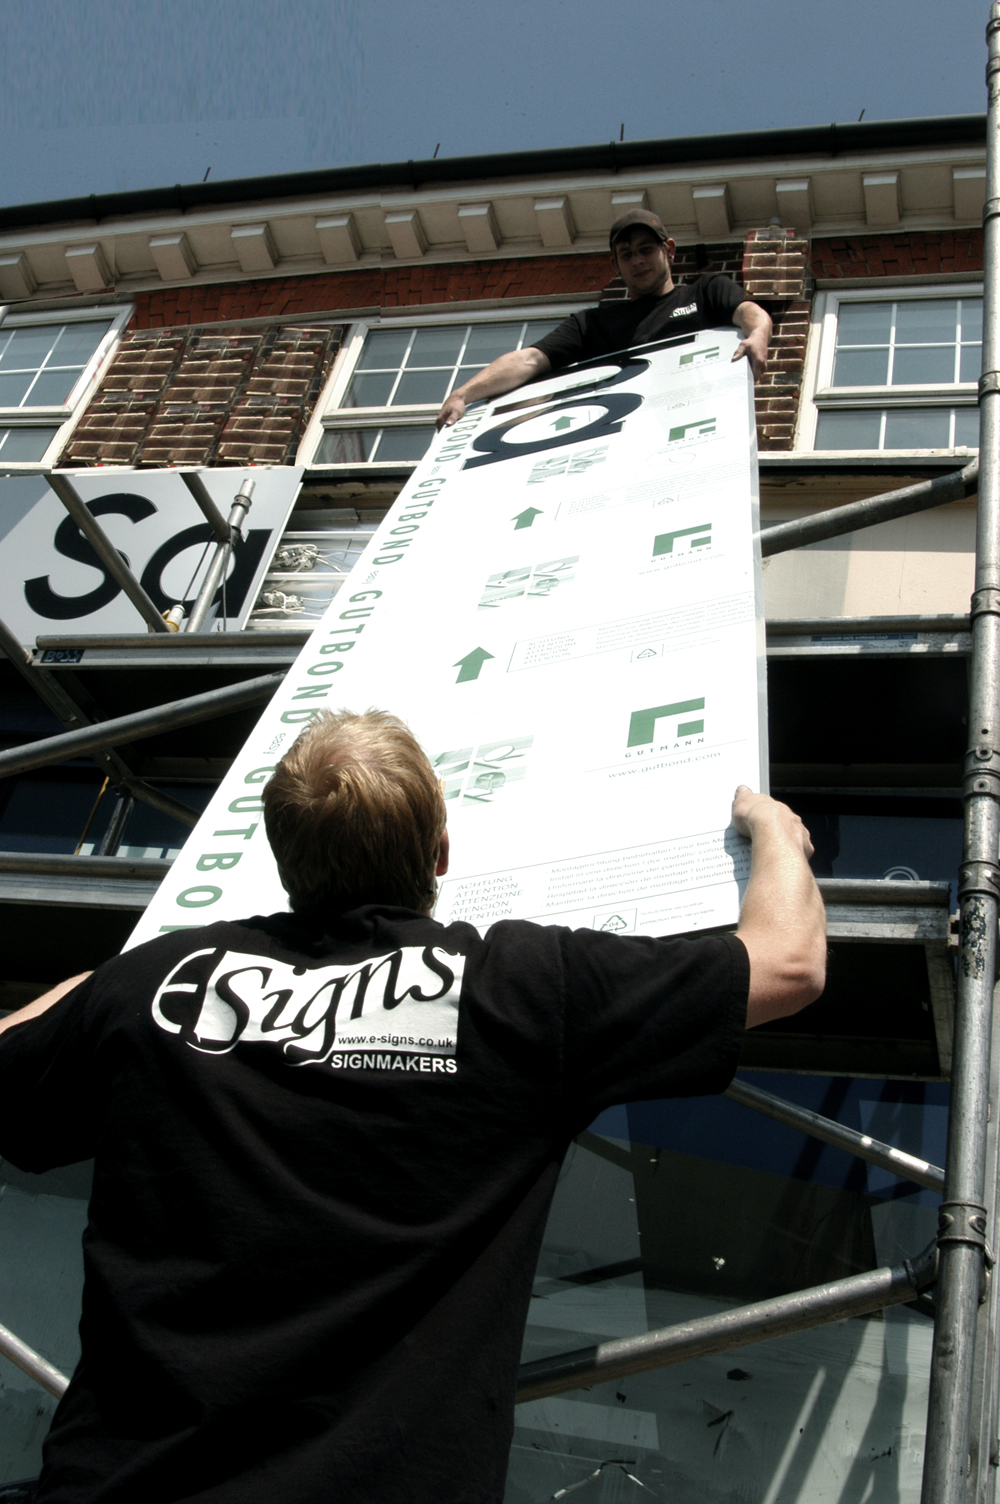 E Signs ® www.e-signs.co.uk sign installers in London